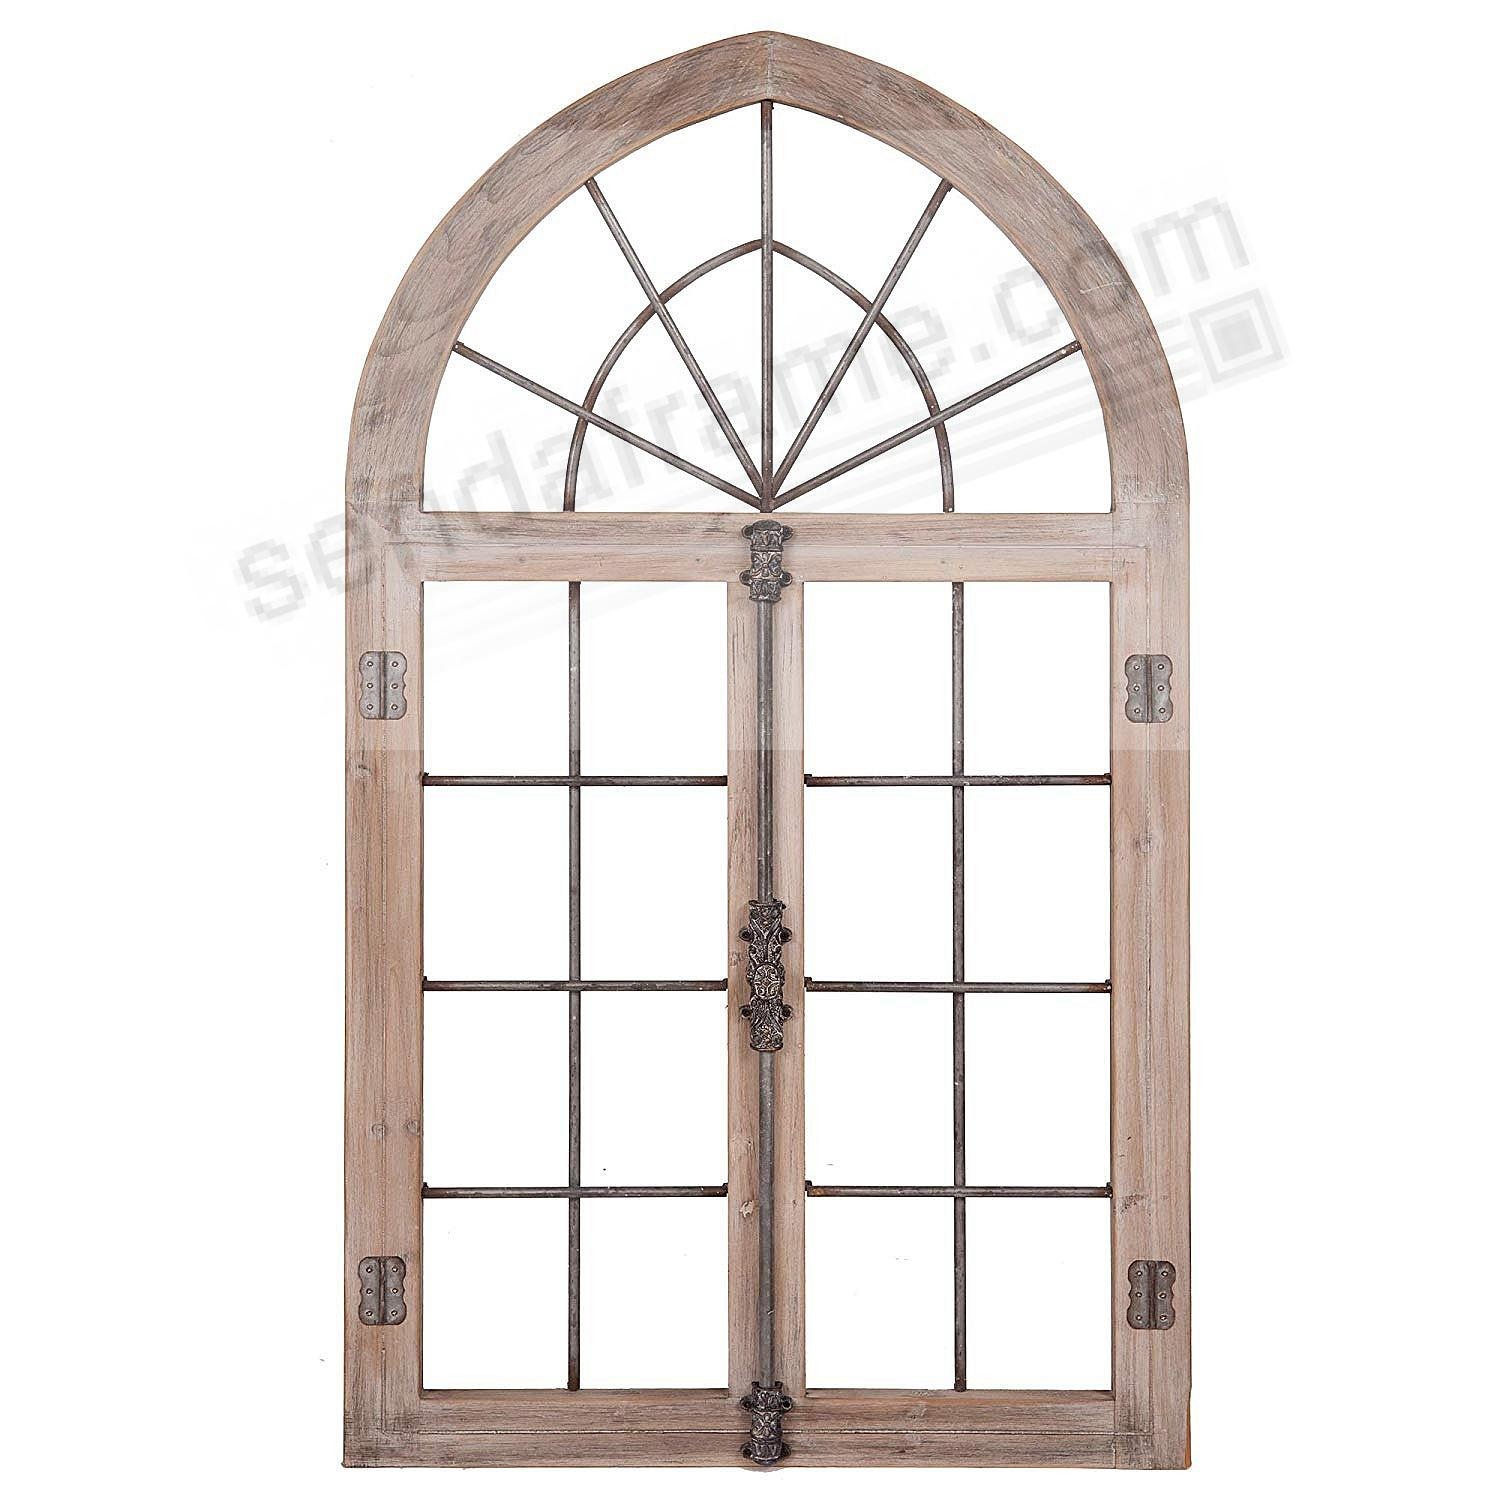 Gray Arched Cathedral Window Frame Wall Décor by NBG